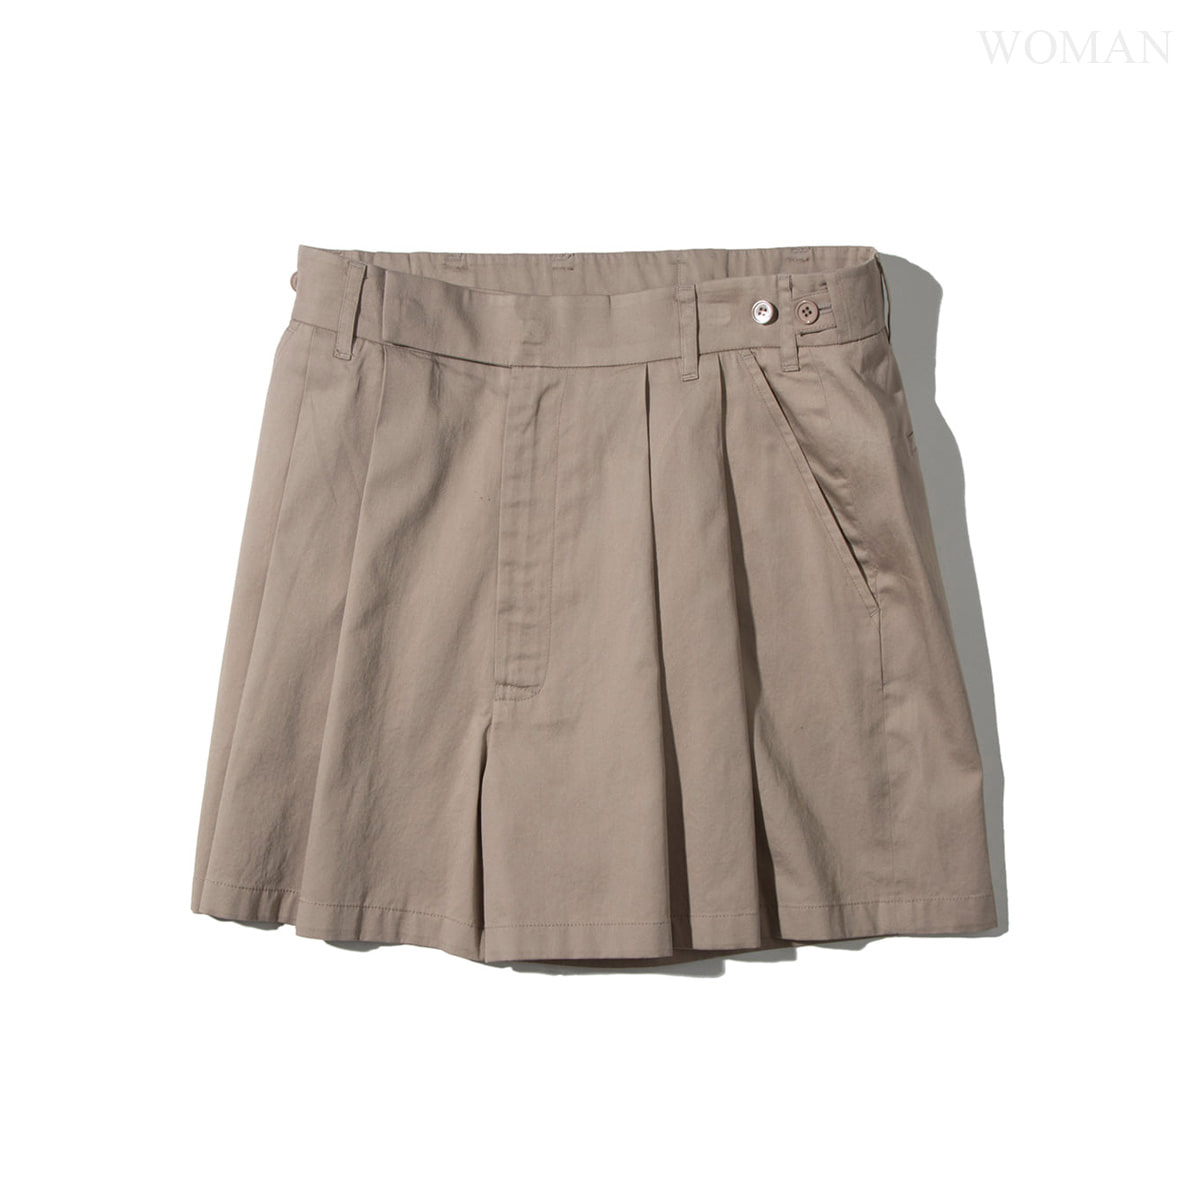 [NEITHERS] 357A-1 2-TUCK WIDE SHORTS 'BEIGE'